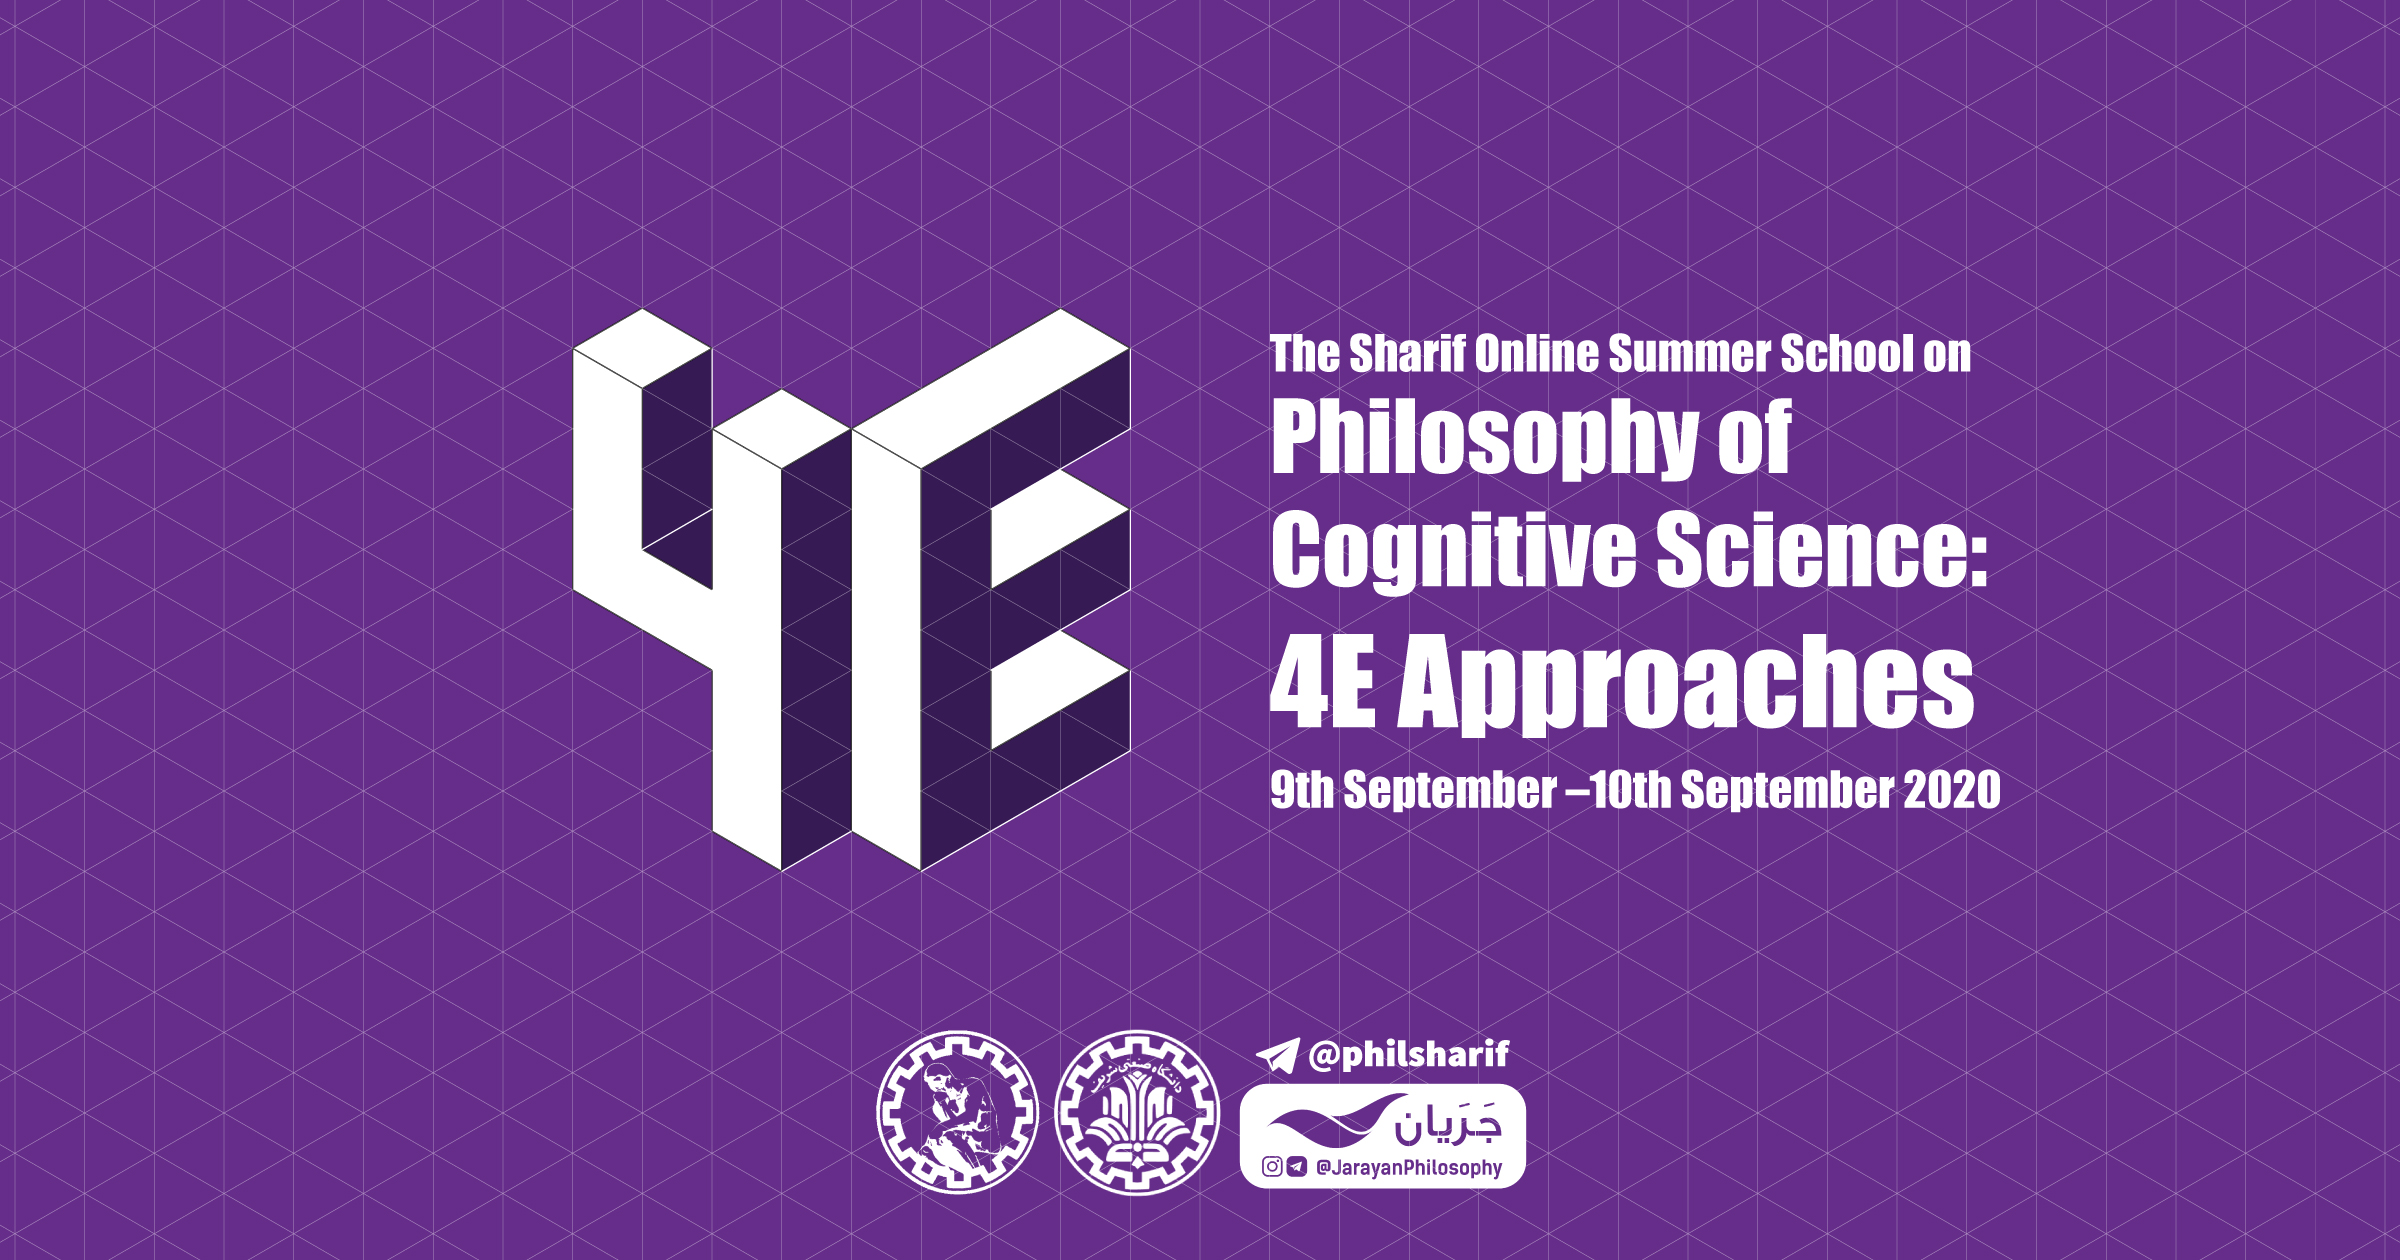 SHARIF Online Summer School on Philosophy of Cognitive Science: 4E Approaches